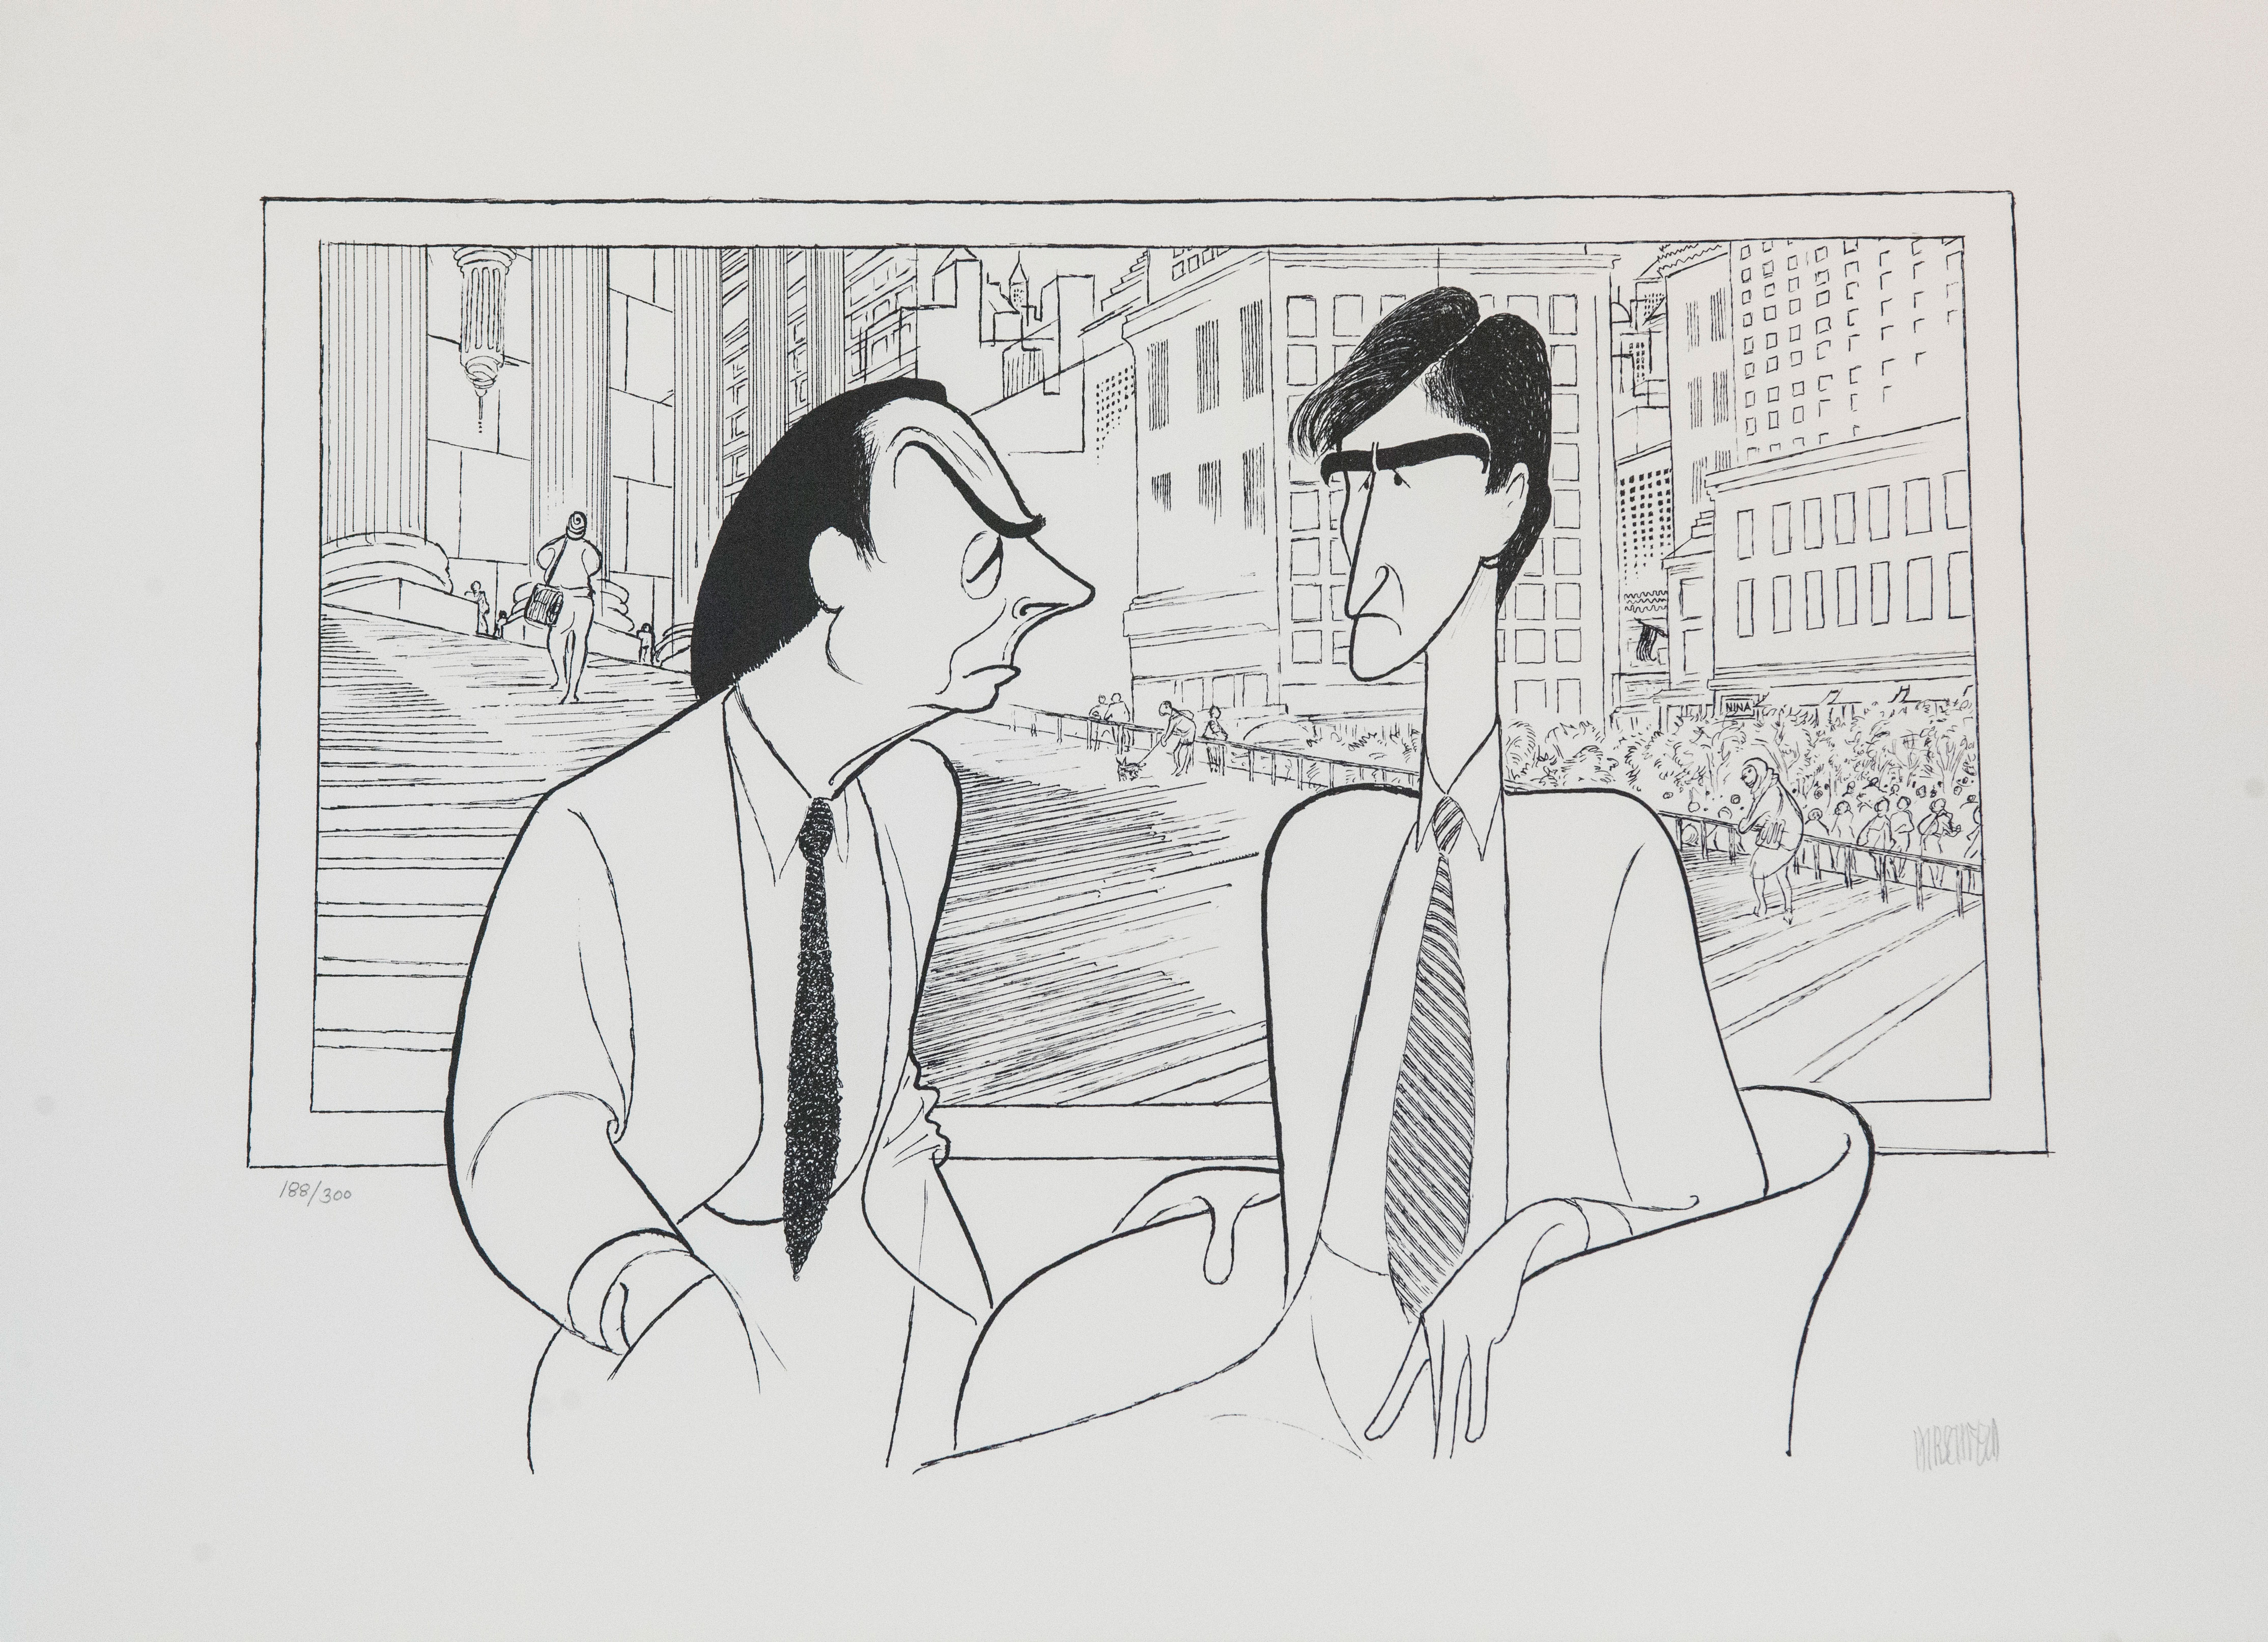 Al Hirschfeld master of line new yorker cartoon celebrity art Law and Order Sam Waterson Jerry Orbach